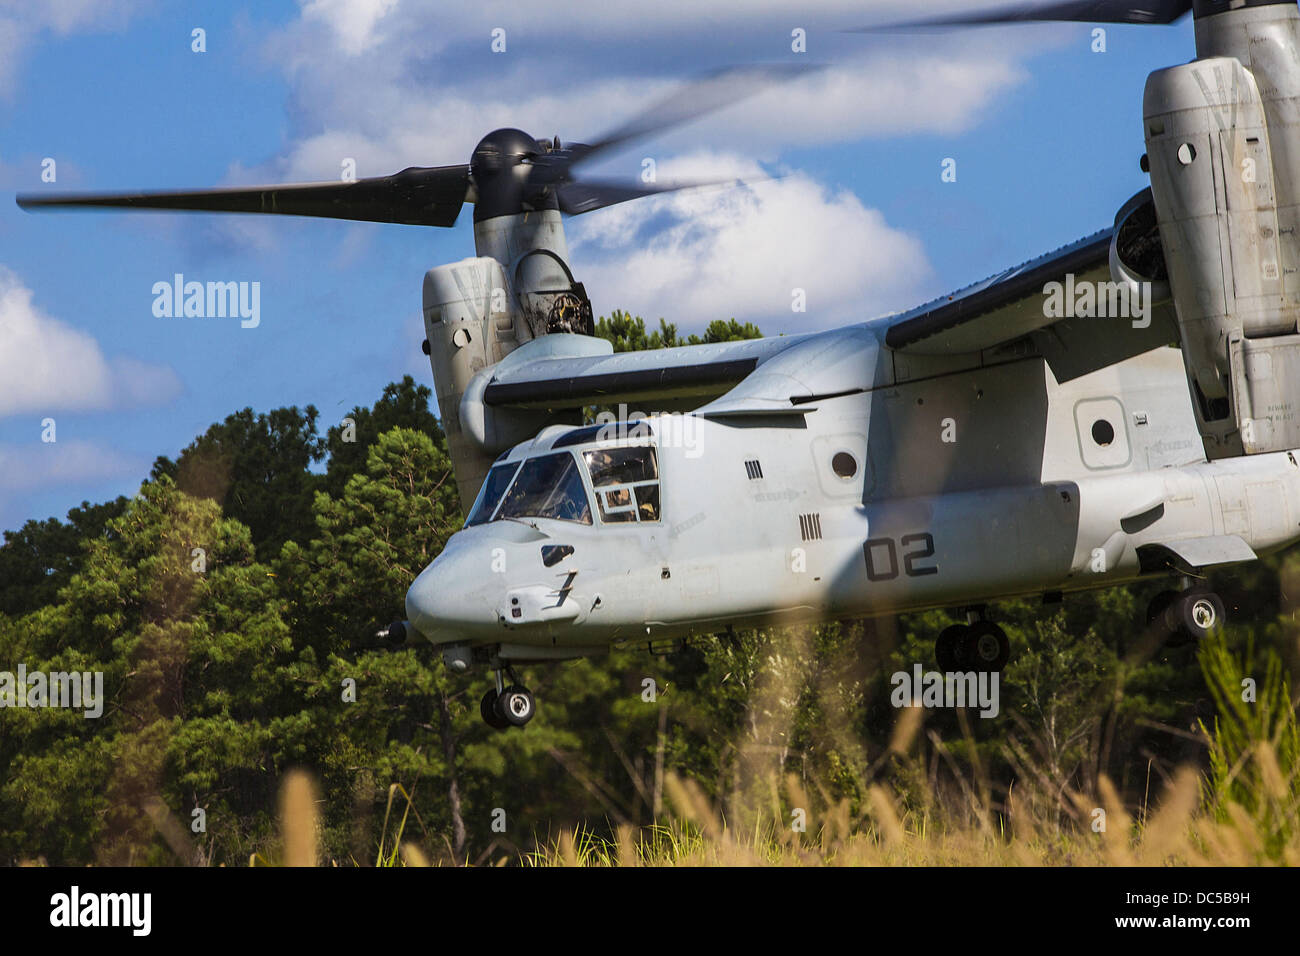 A US Marine Corp MV-22 Osprey aircraft lands in a field during a mass casualty evacuation exercise August 7, 2013 - Stock Image